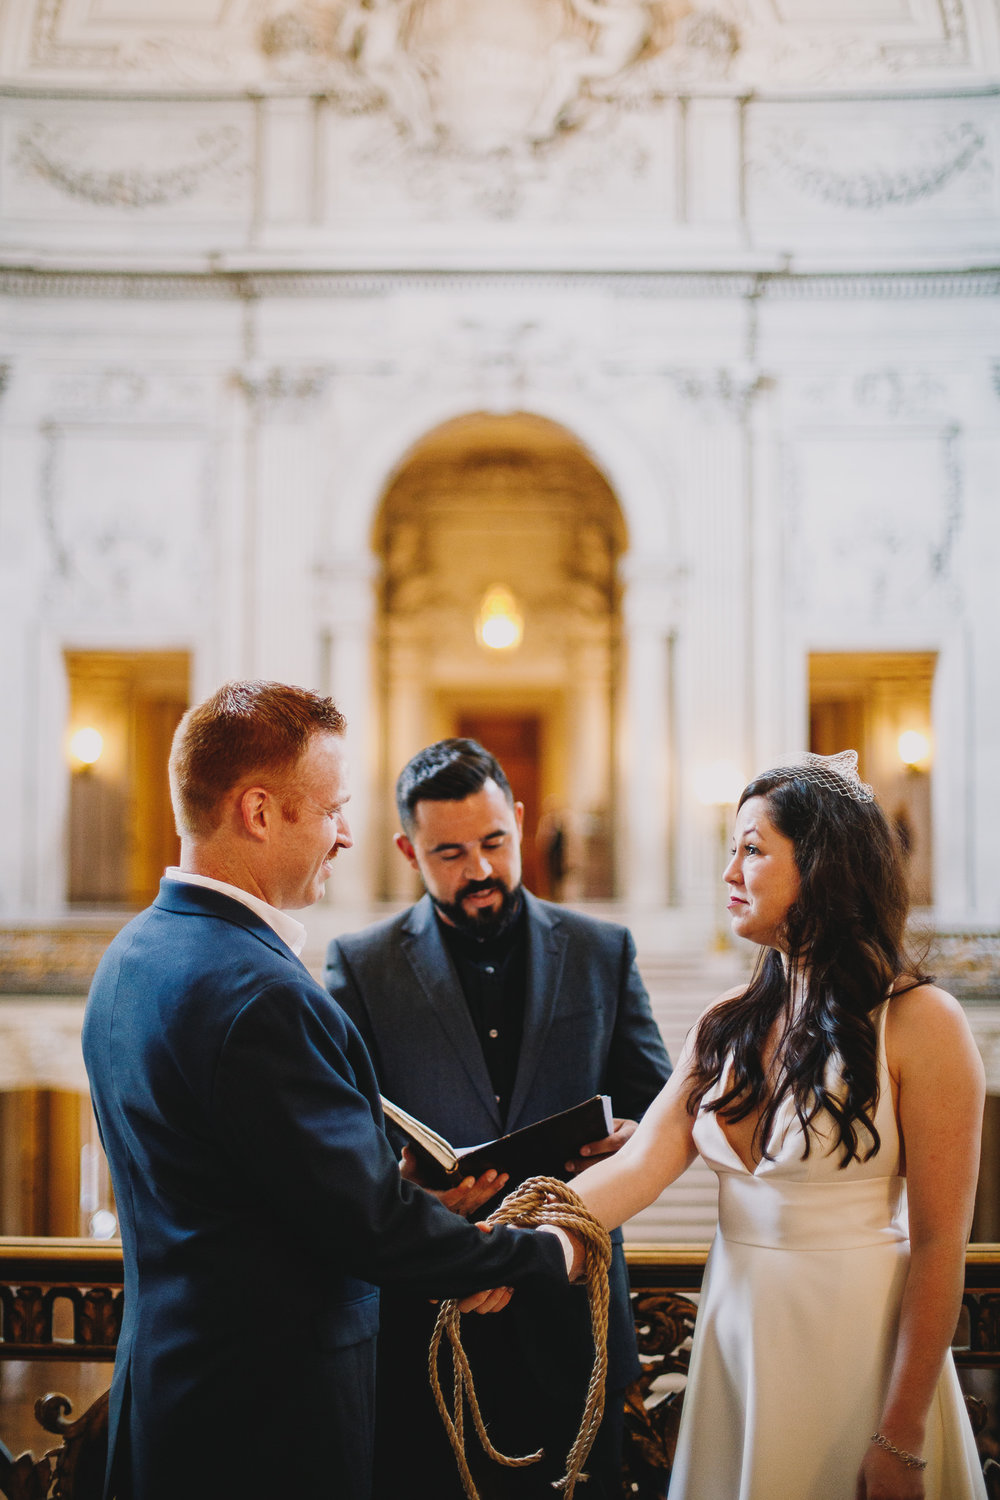 Archer Inspired Photography SF City Hall Elopement Wedding Lifestyle Documentary Affordable Photographer-99.jpg